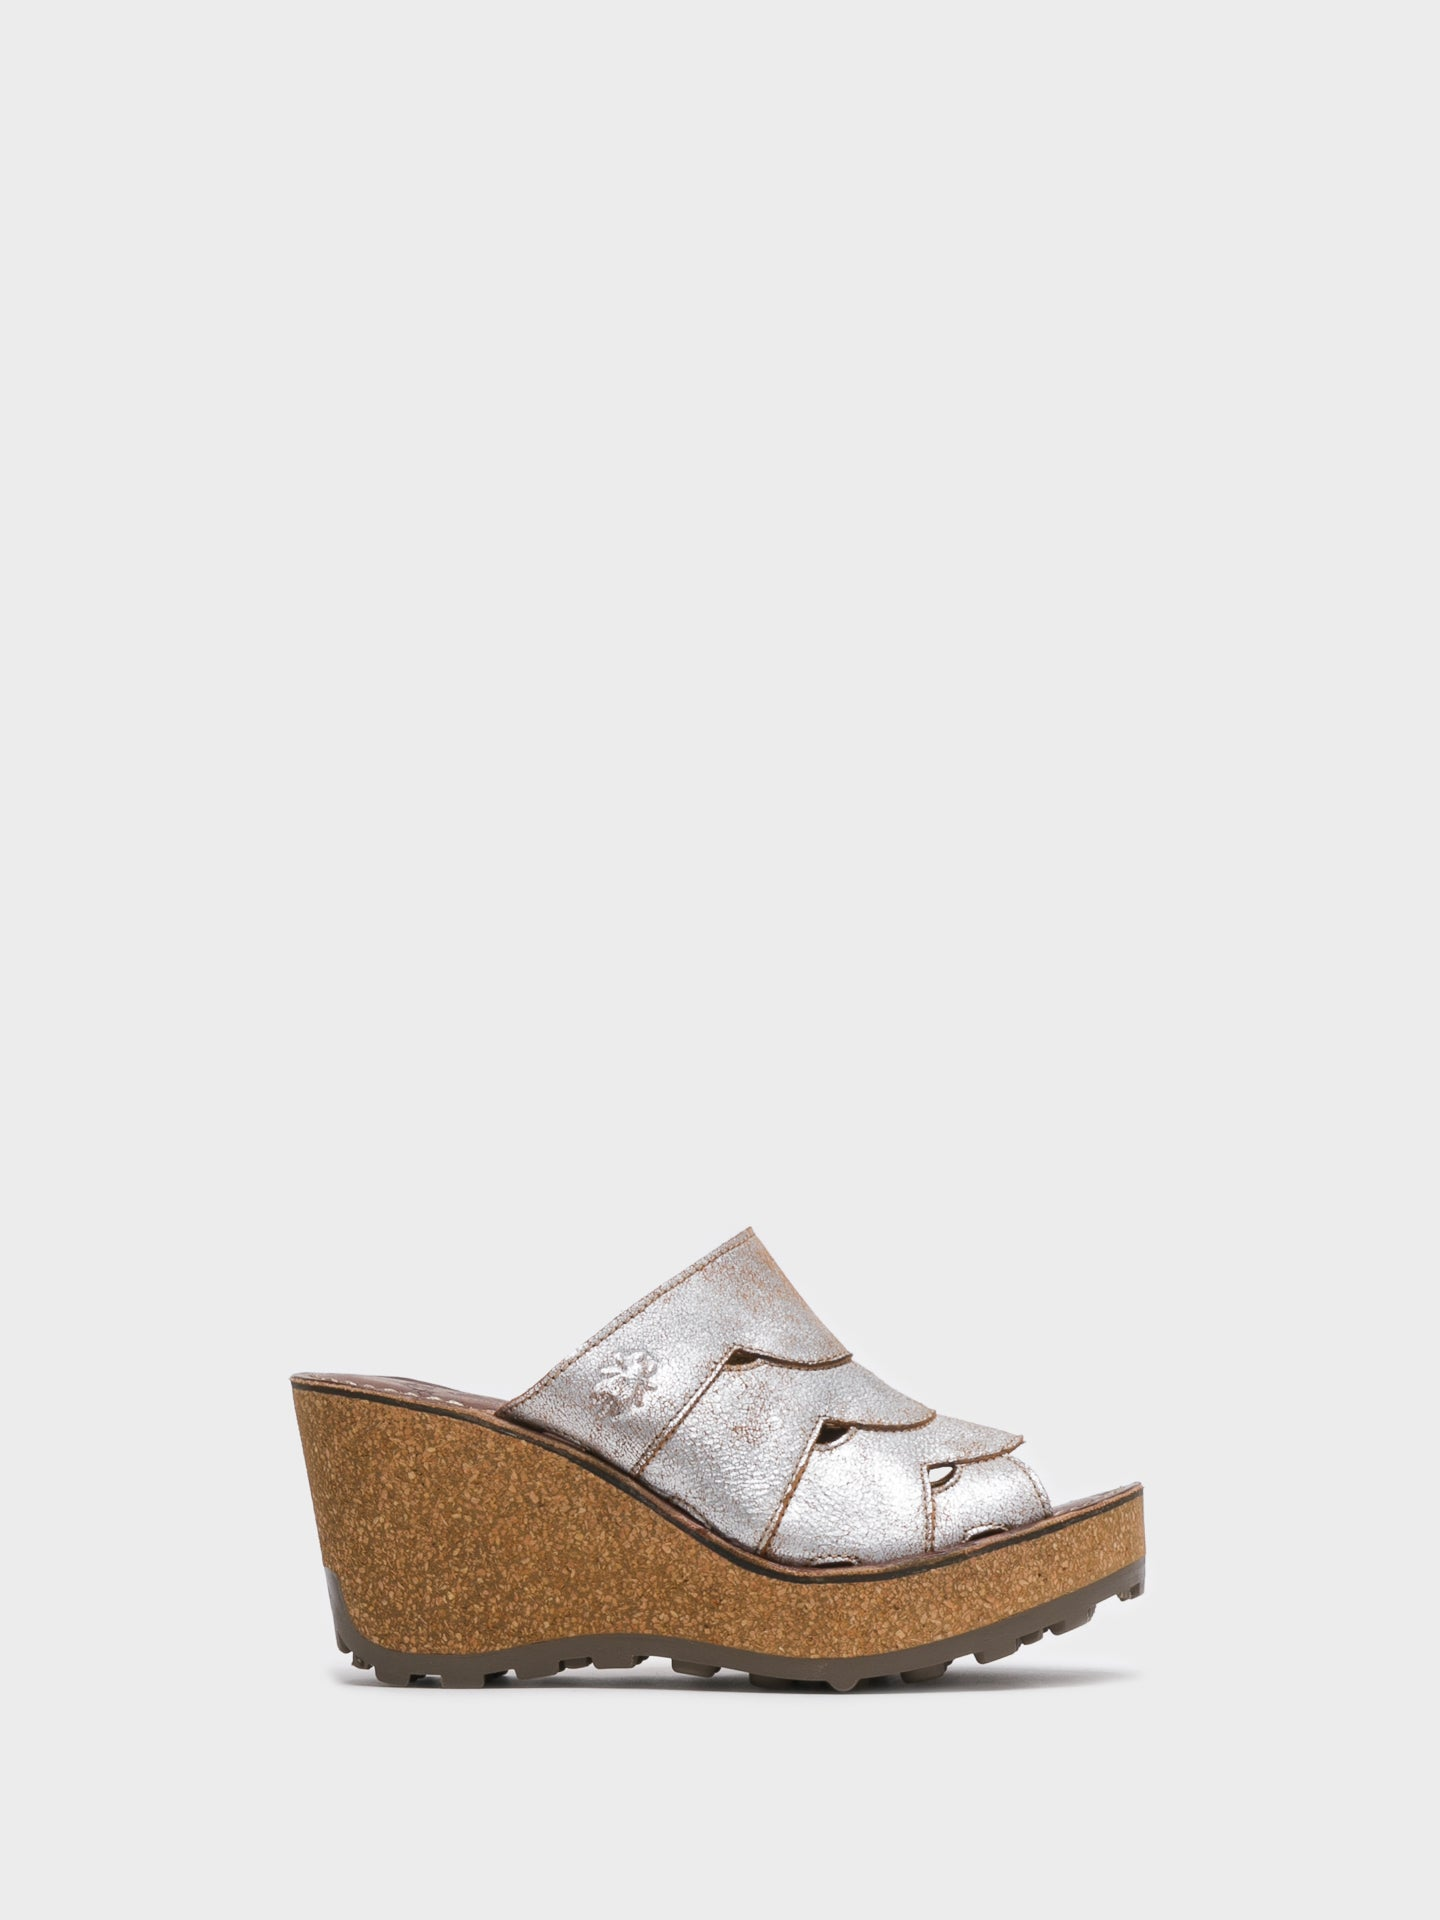 Fly London Mules con Cuña en color Beige